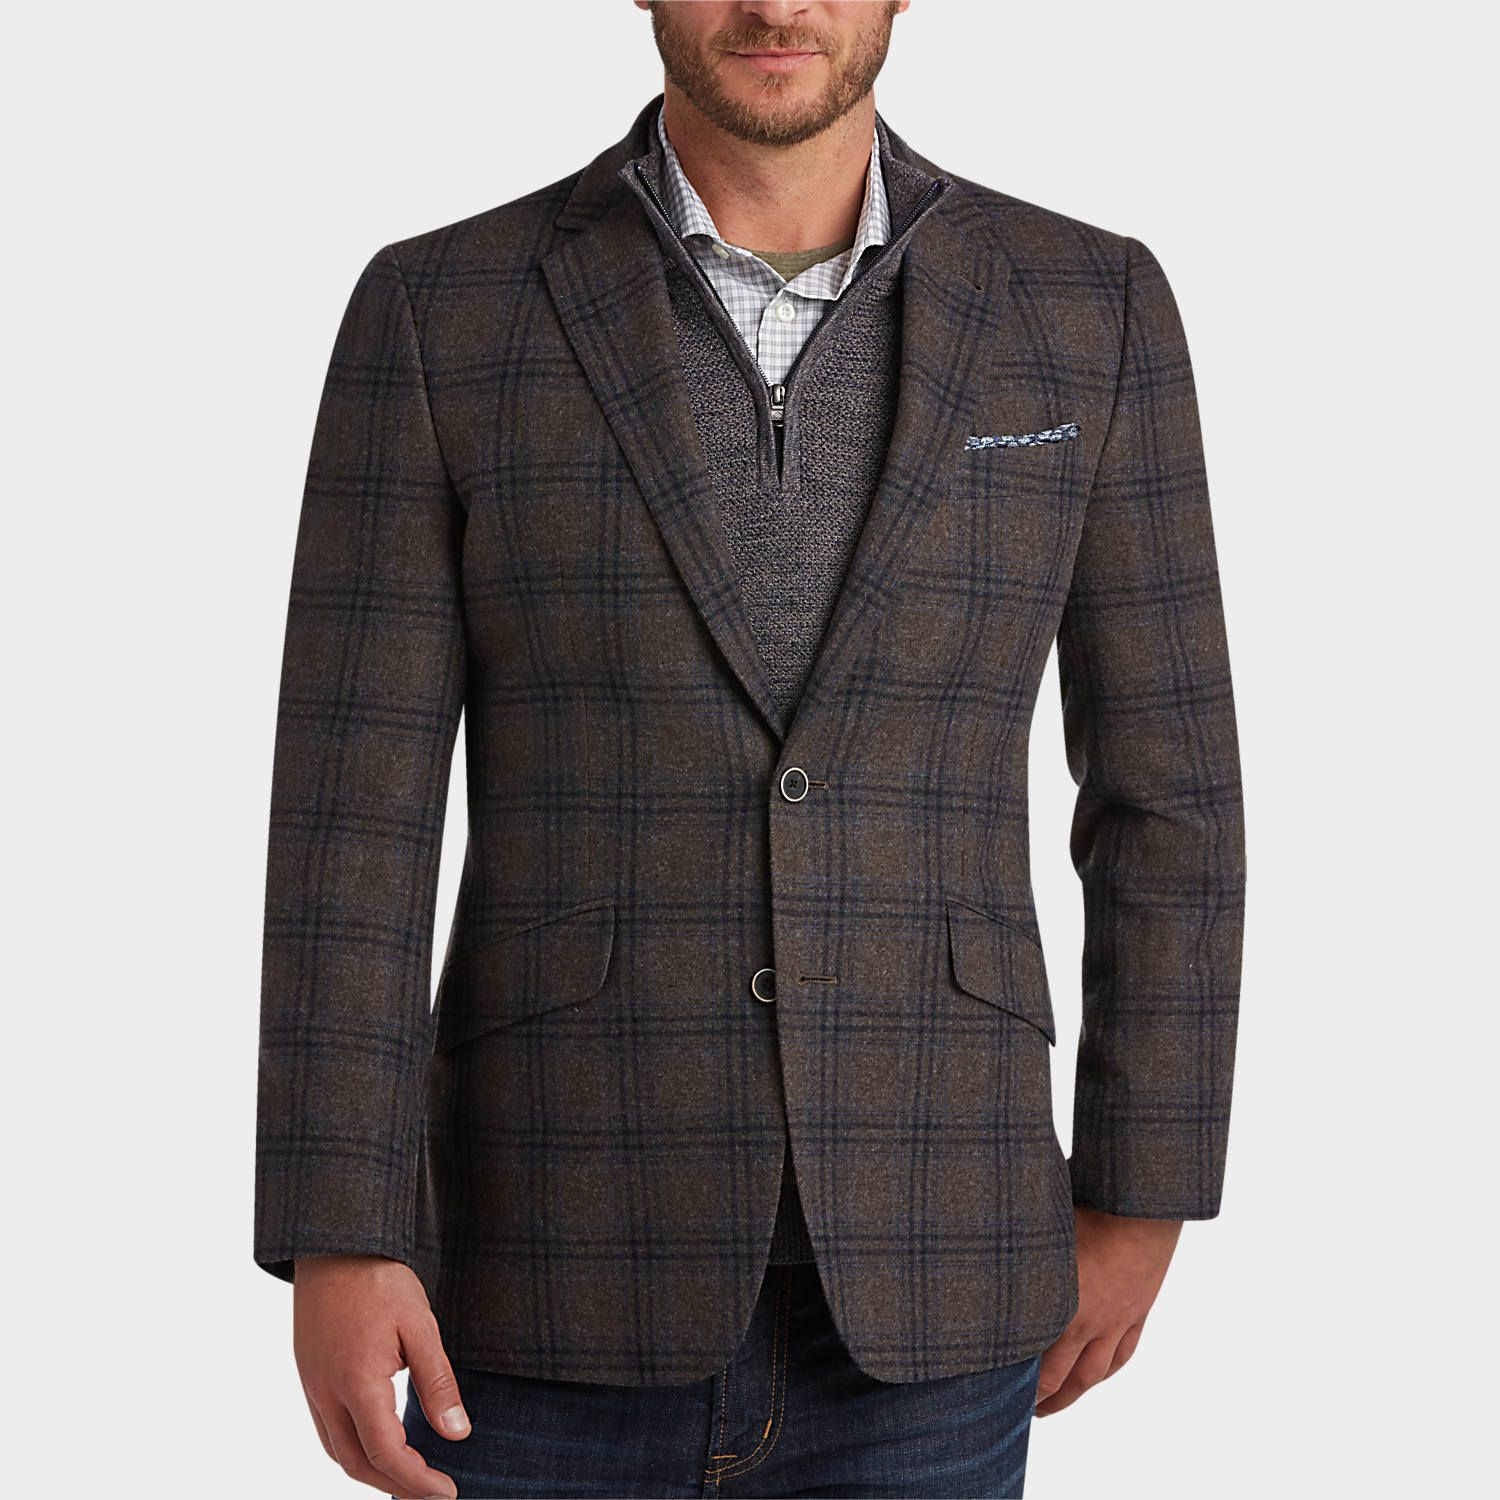 d2e08564c9f5f Buy a Joseph Abboud Brown   Navy Plaid Modern Fit Sport Coat and other  Blazers at Men s Wearhouse. Browse the latest styles